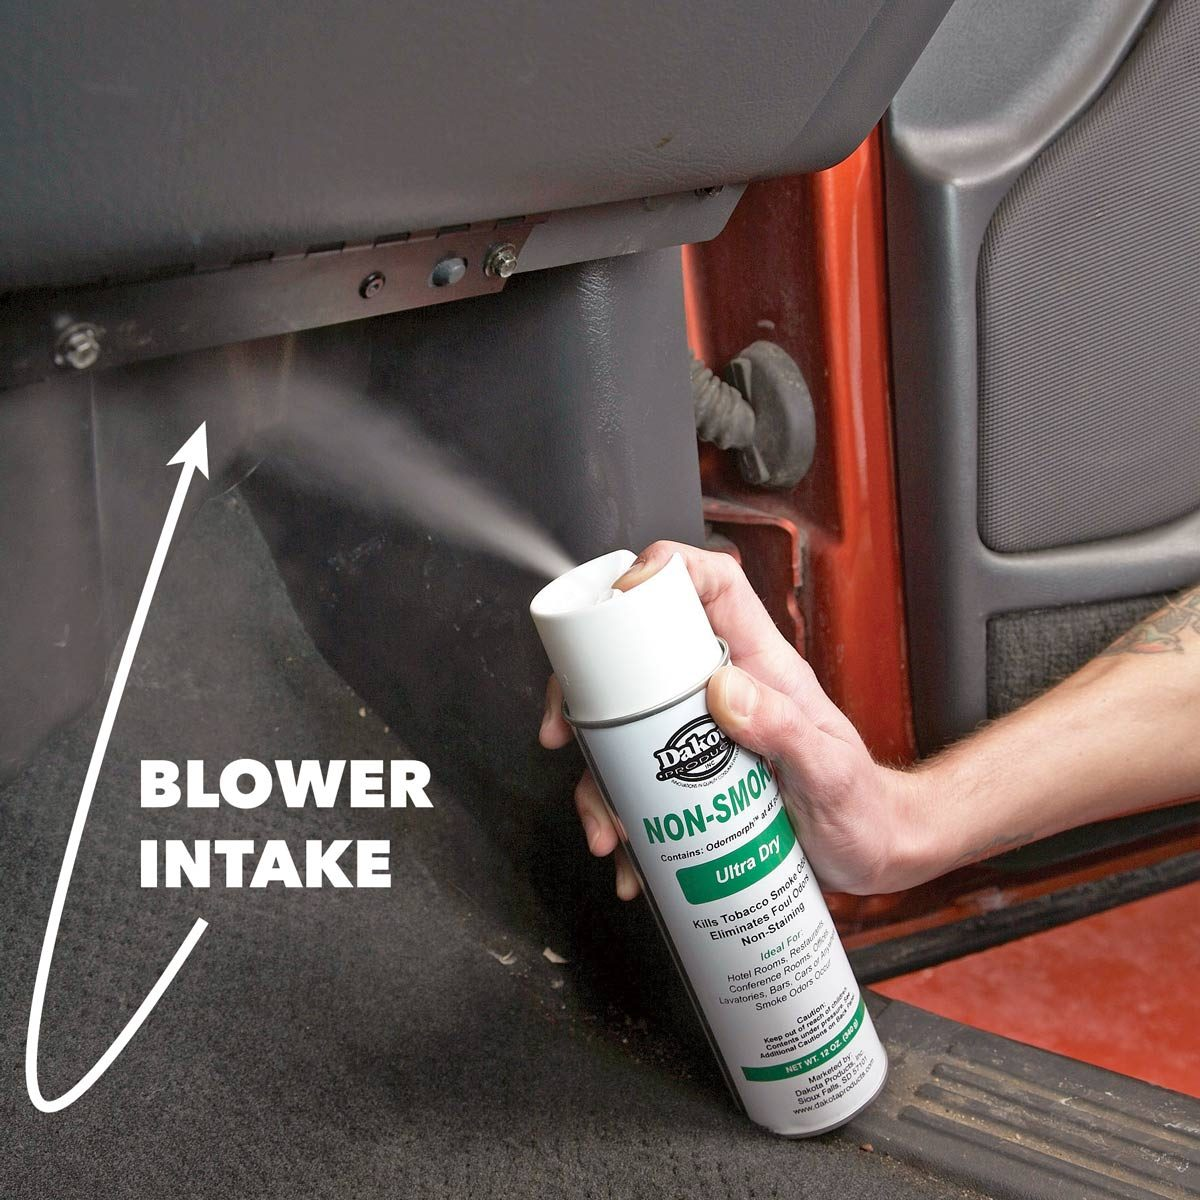 aerosol can sprays smell remover into car blower intake